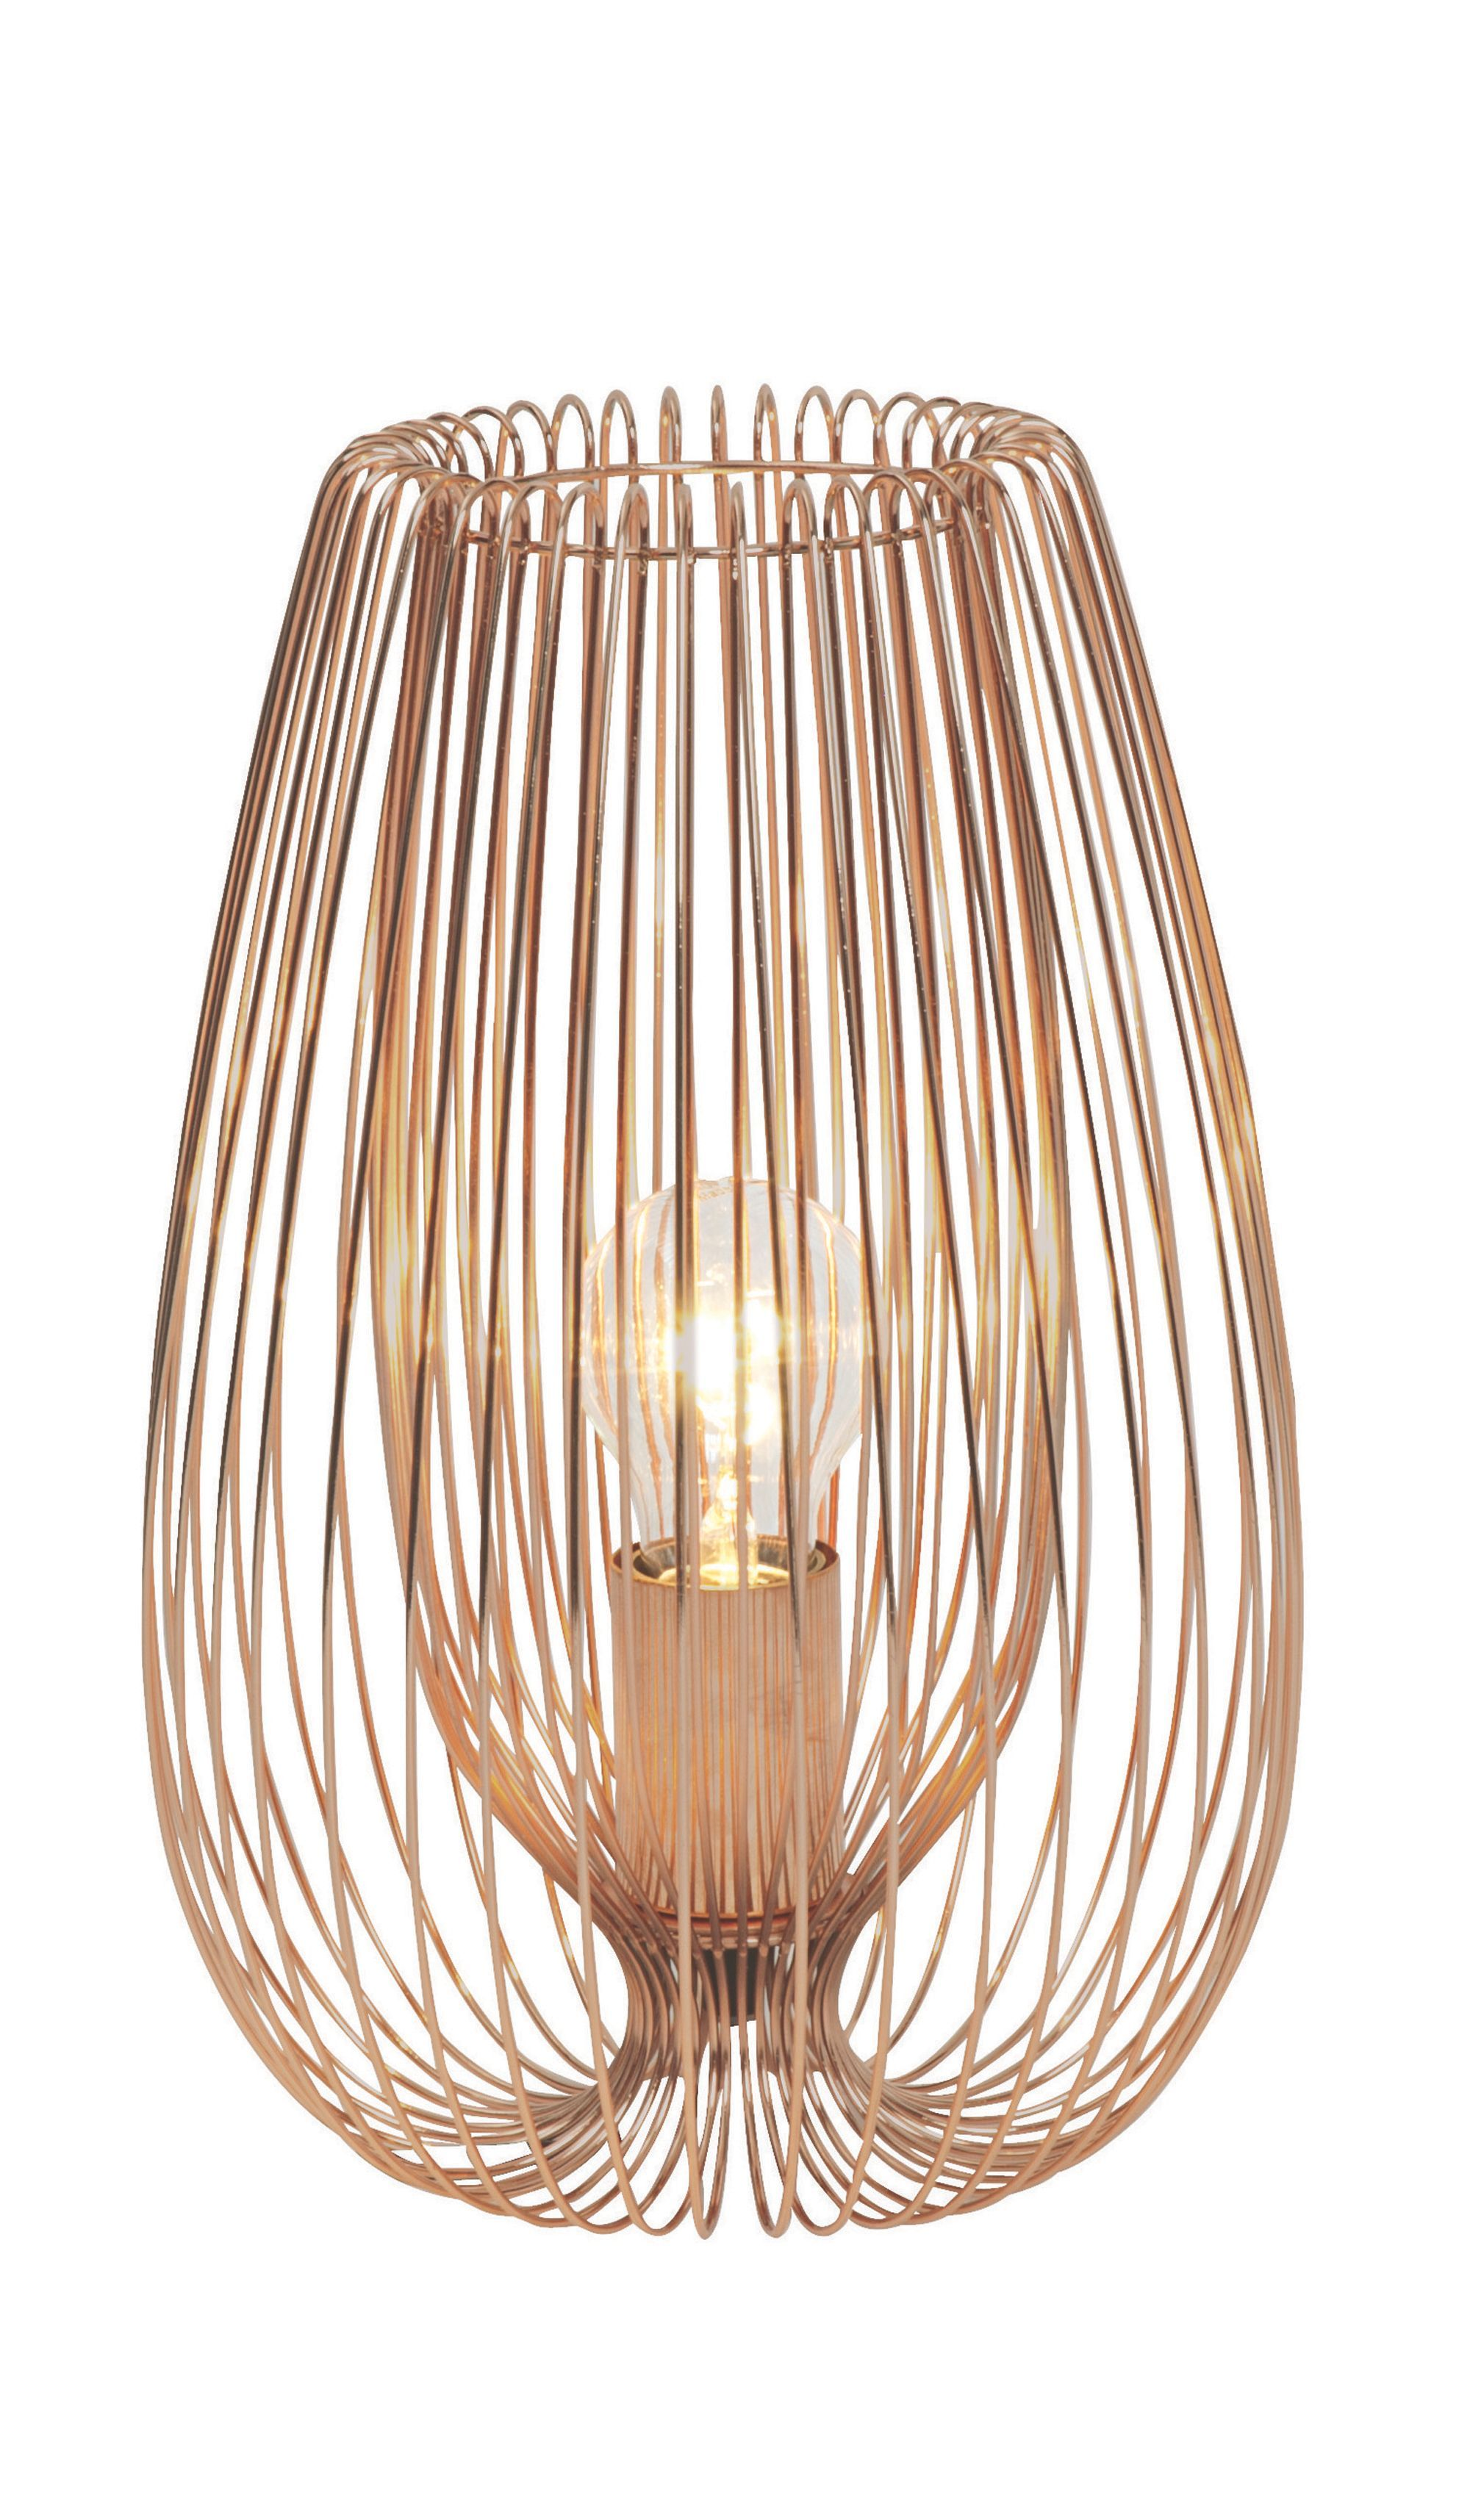 Jonas brown copper wire table lamp copper wire lights and jonas brown copper wire table lamp greentooth Gallery